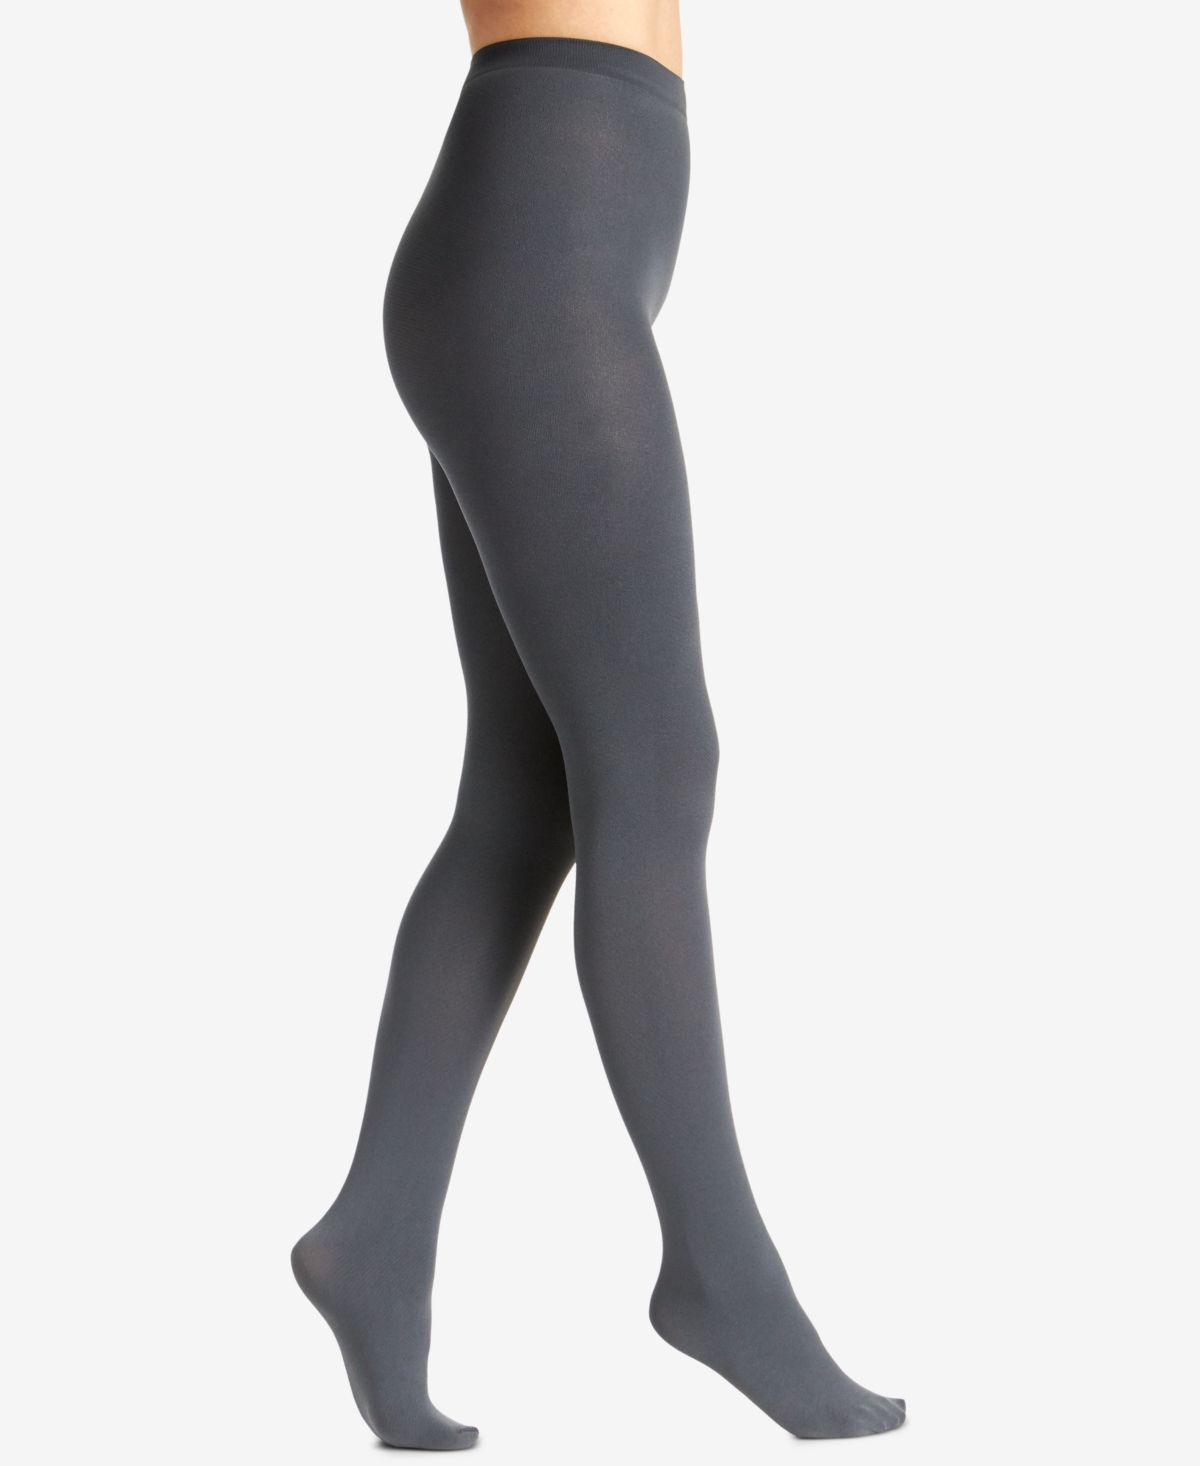 WOMENS BEAUTIFUL BLACK LEGGING FLEECE LINED TIGHT COZY ONE SIZE FITS MOST